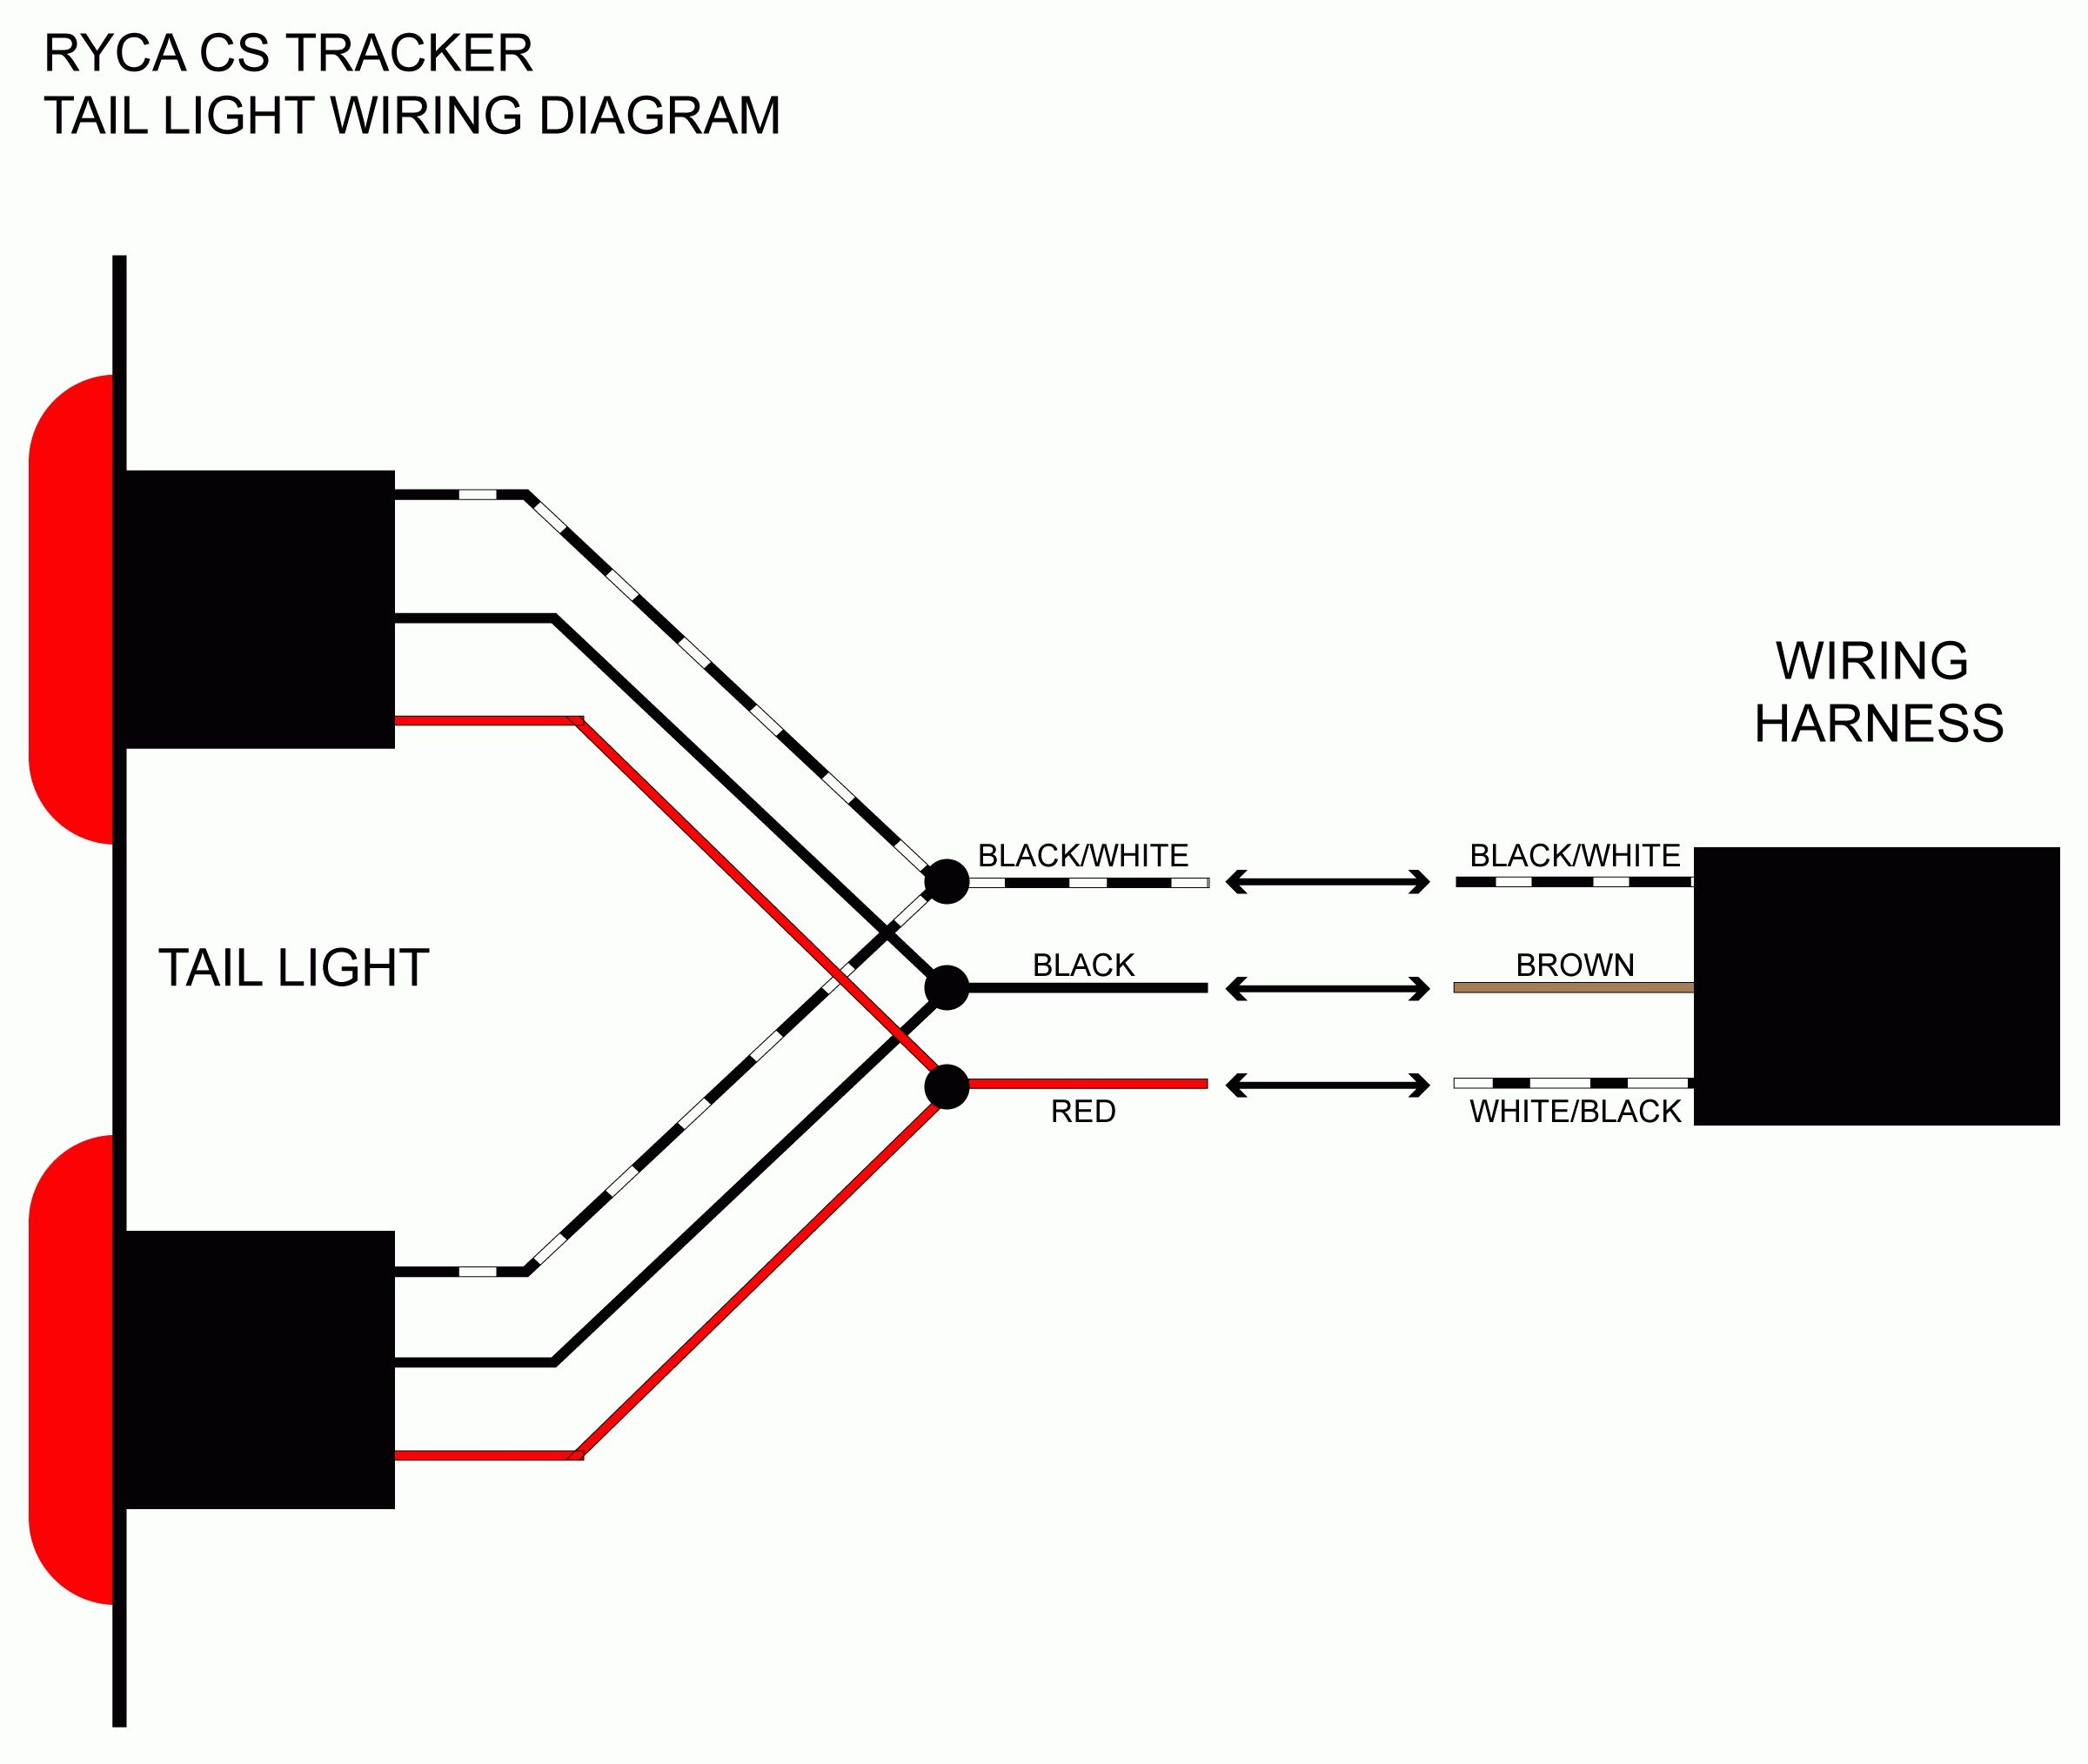 Led Wiring Circuit Diagram | Wiring Diagrams on